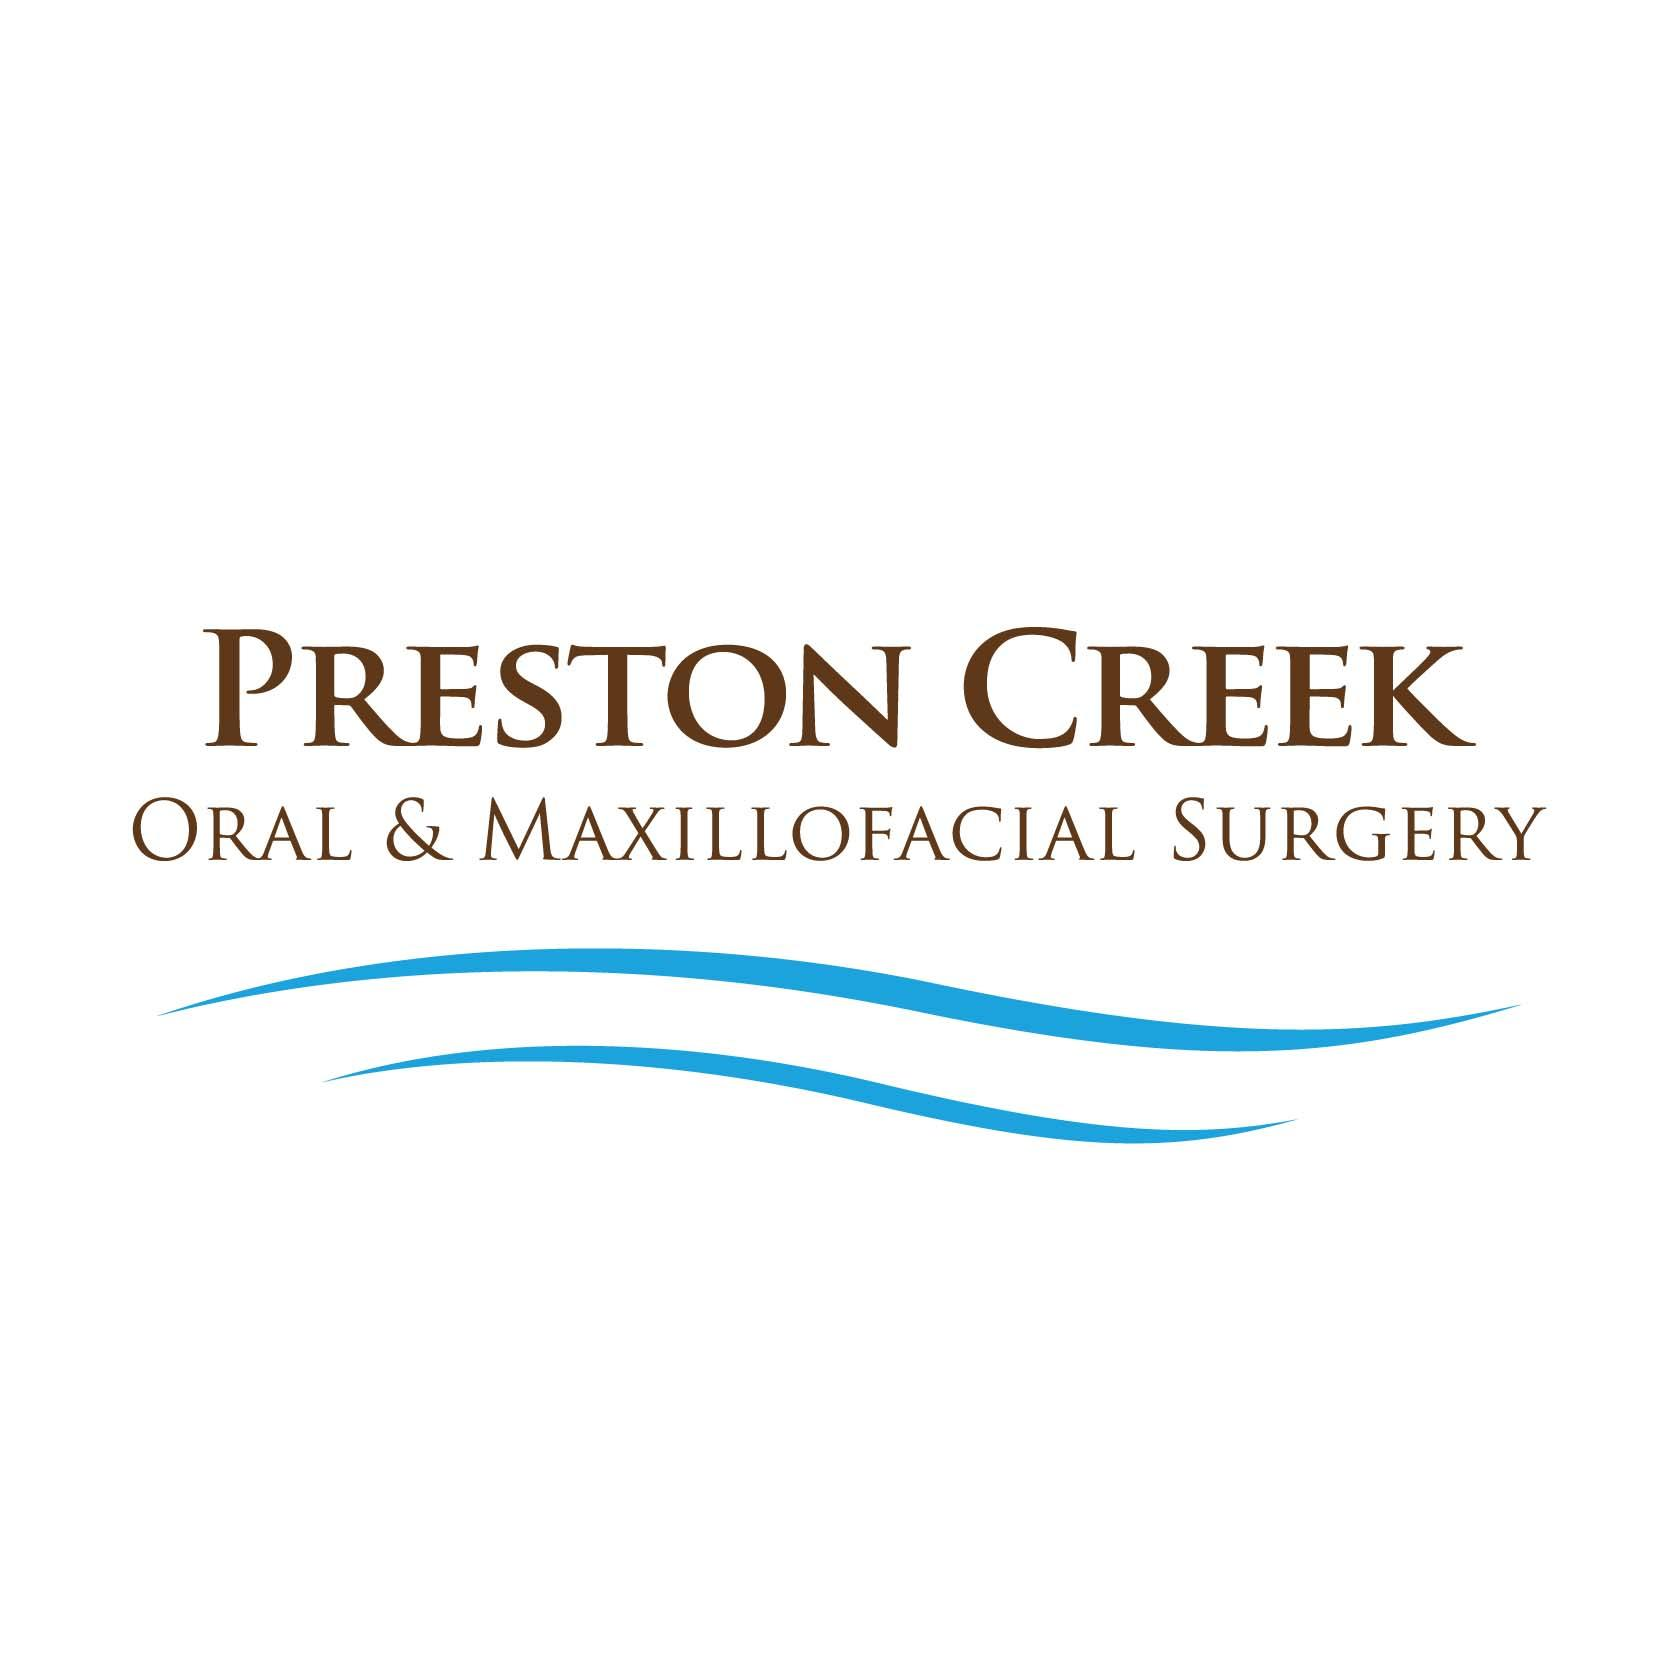 Preston Creek Oral & Maxillofacial Surgery